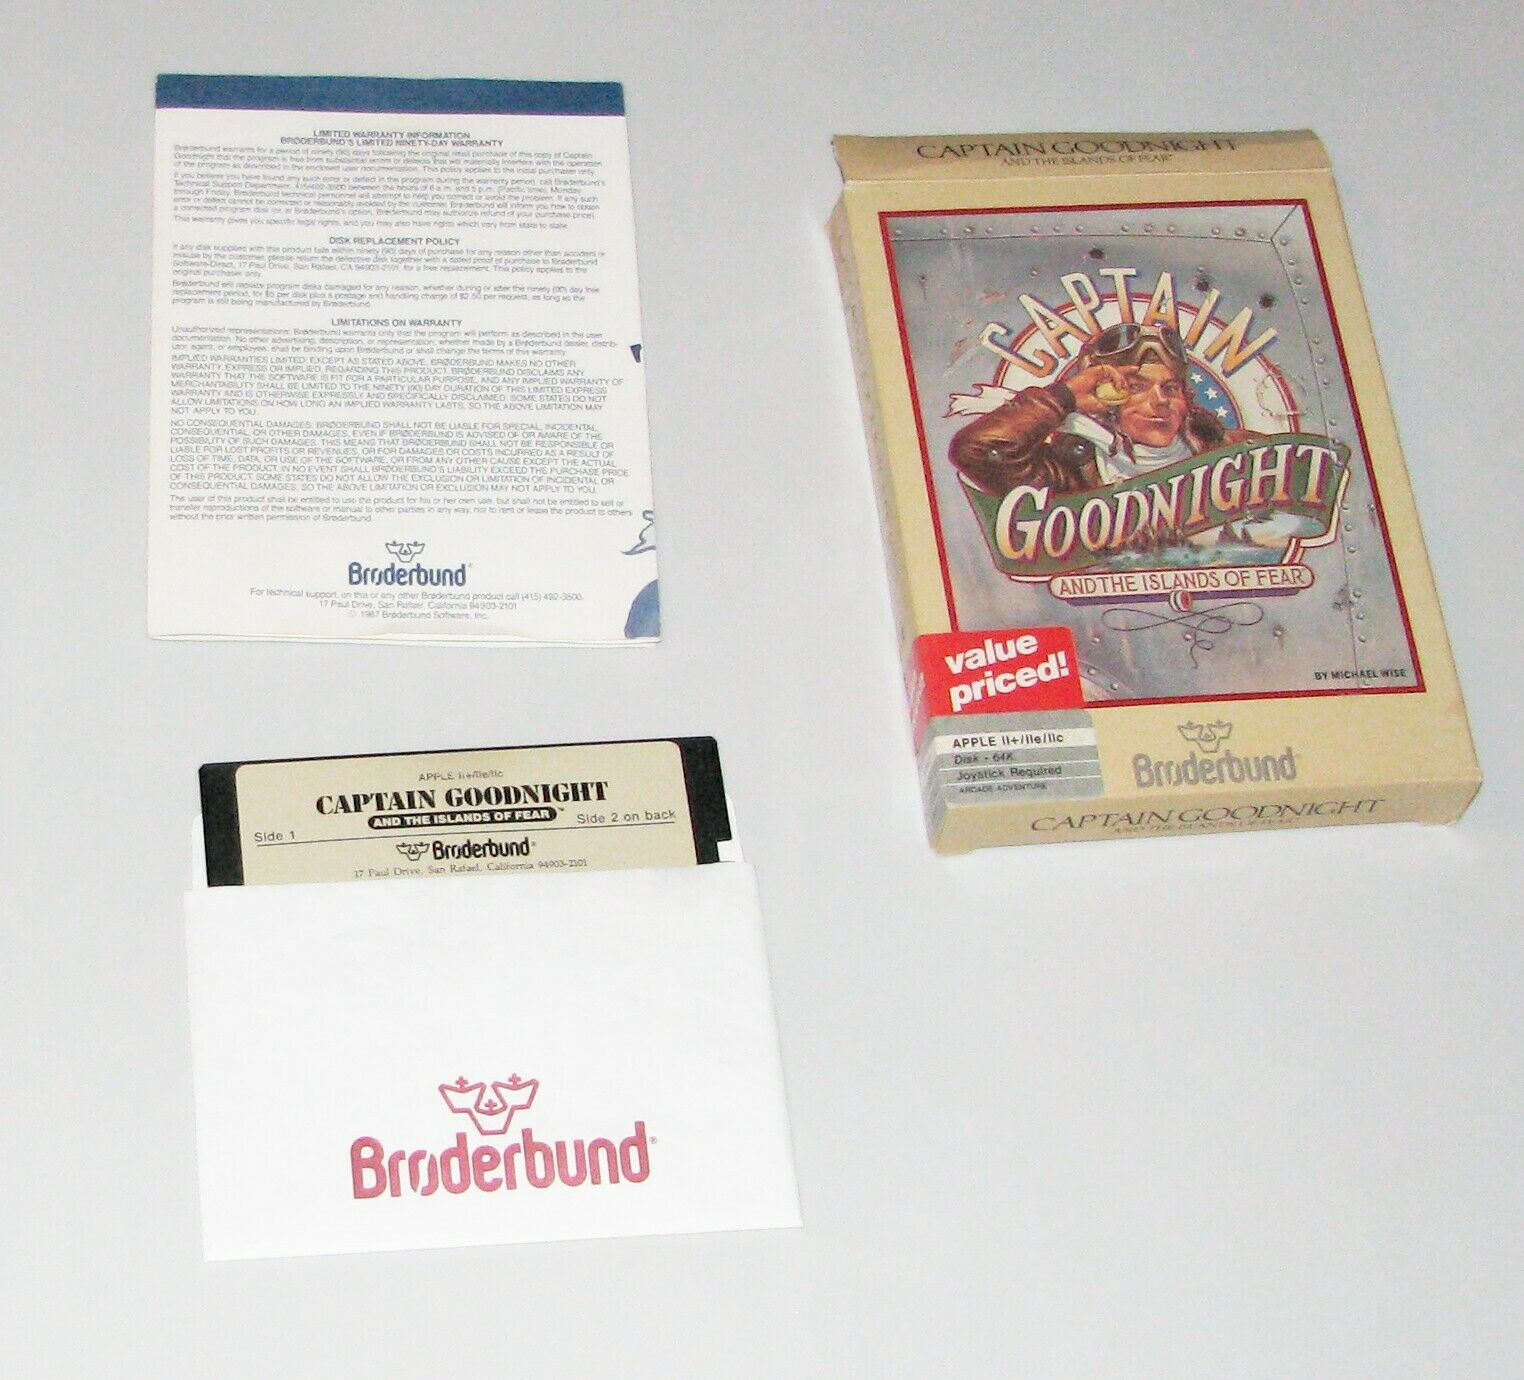 Computer Games - CAPTAIN GOODNIGHT Apple 2 Vintage computer game by Broderbund (USED/ AS IS)